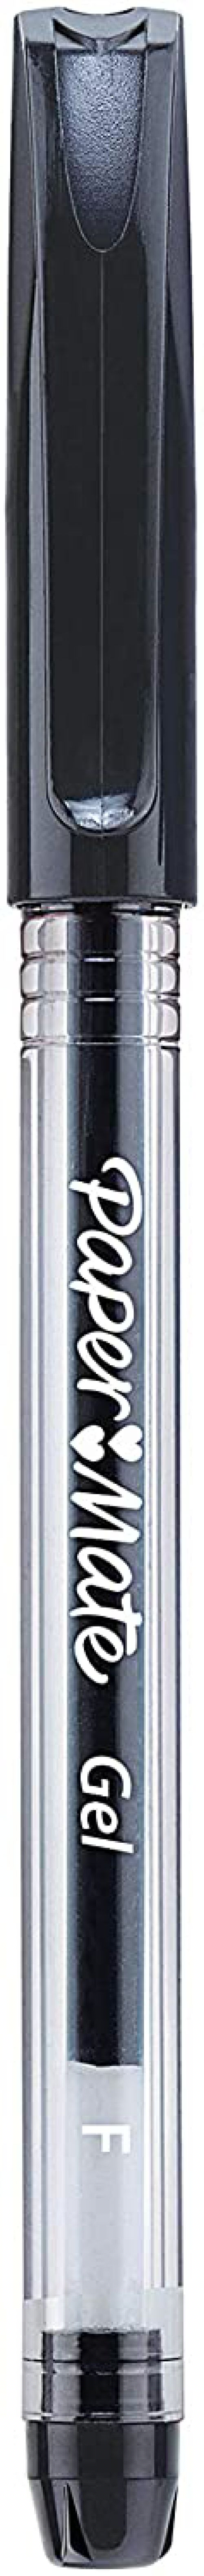 Paper Mate Gel Stick 0.5mm Pen Black PK12